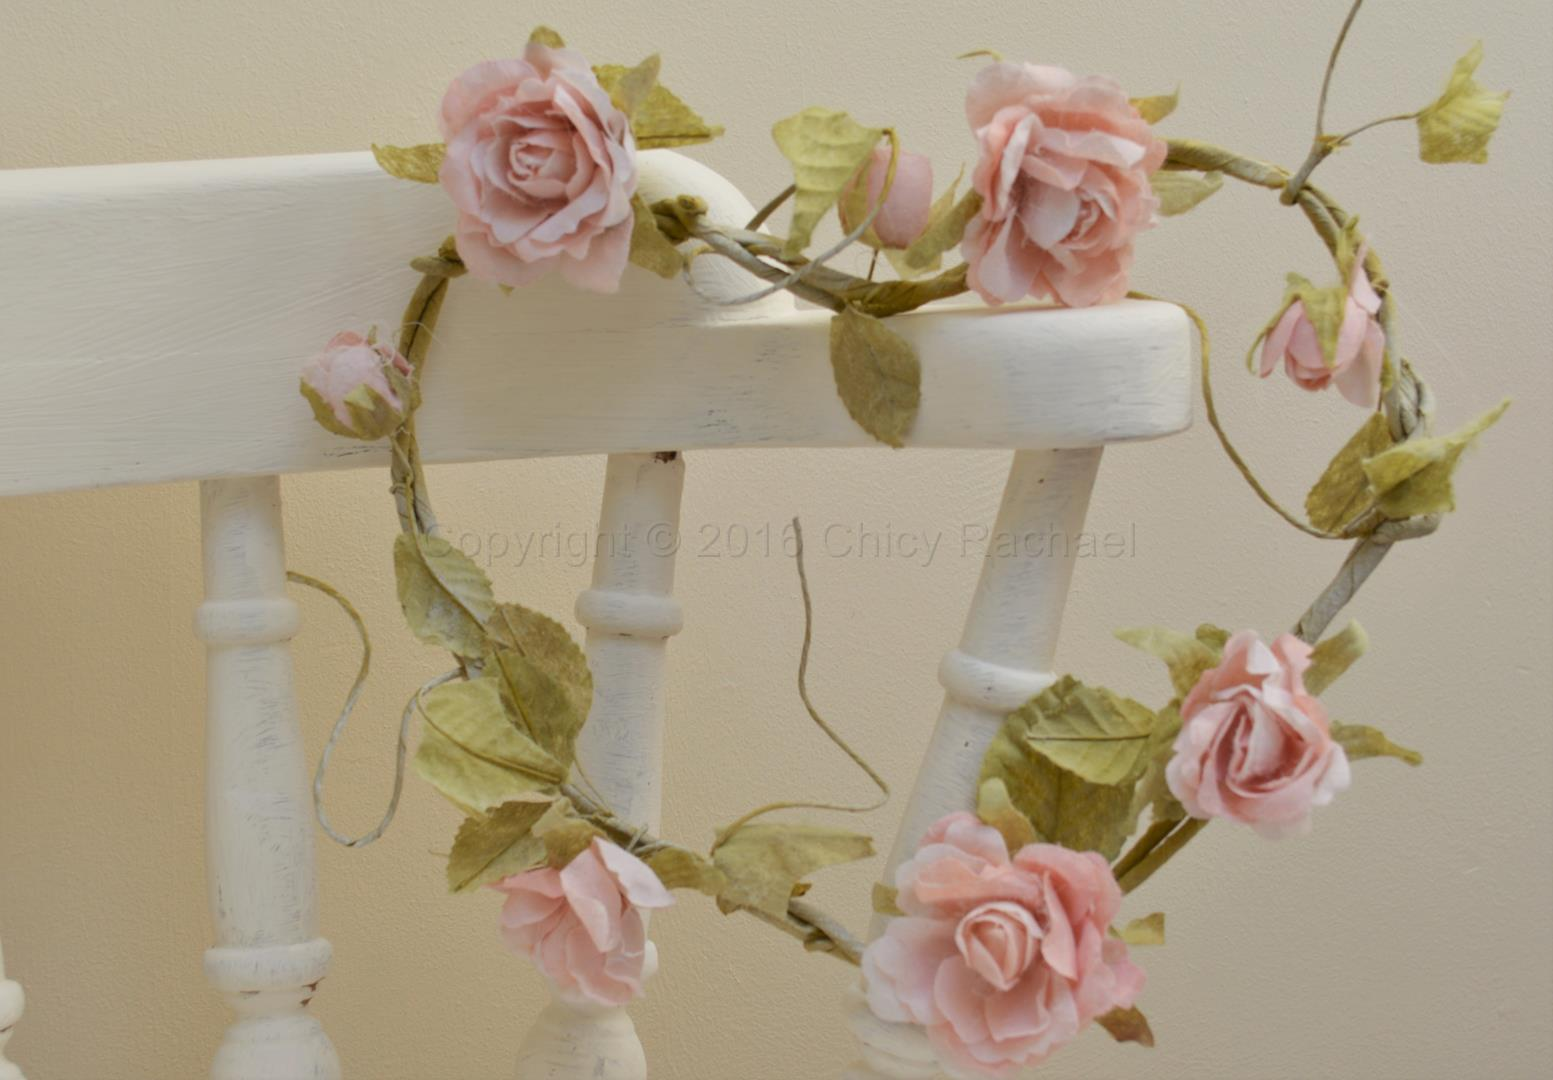 Pink Rose Heart Shaped Garland Chicy Rachael